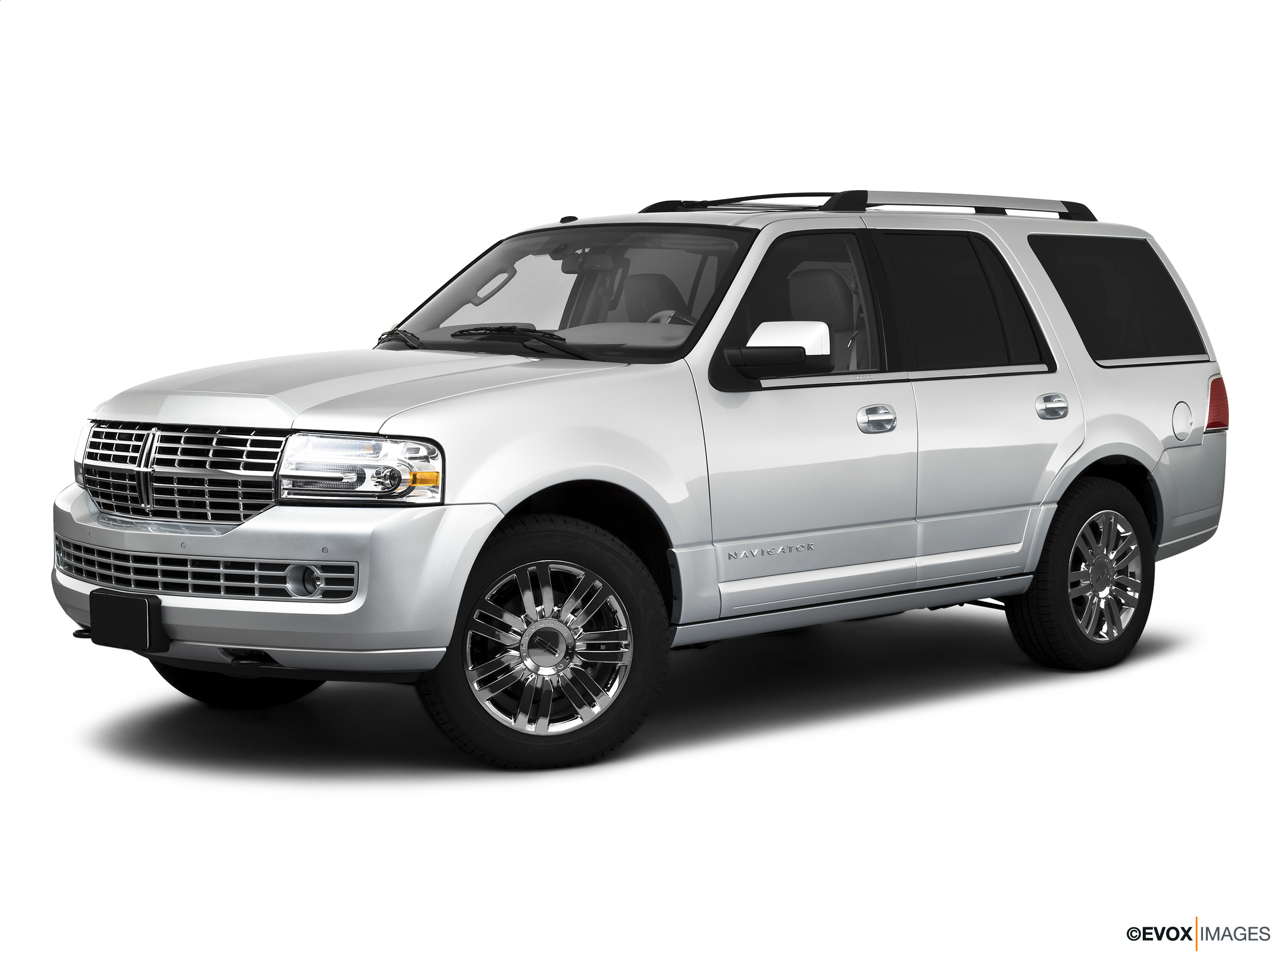 2010 Lincoln Navigator Base 047 - no description